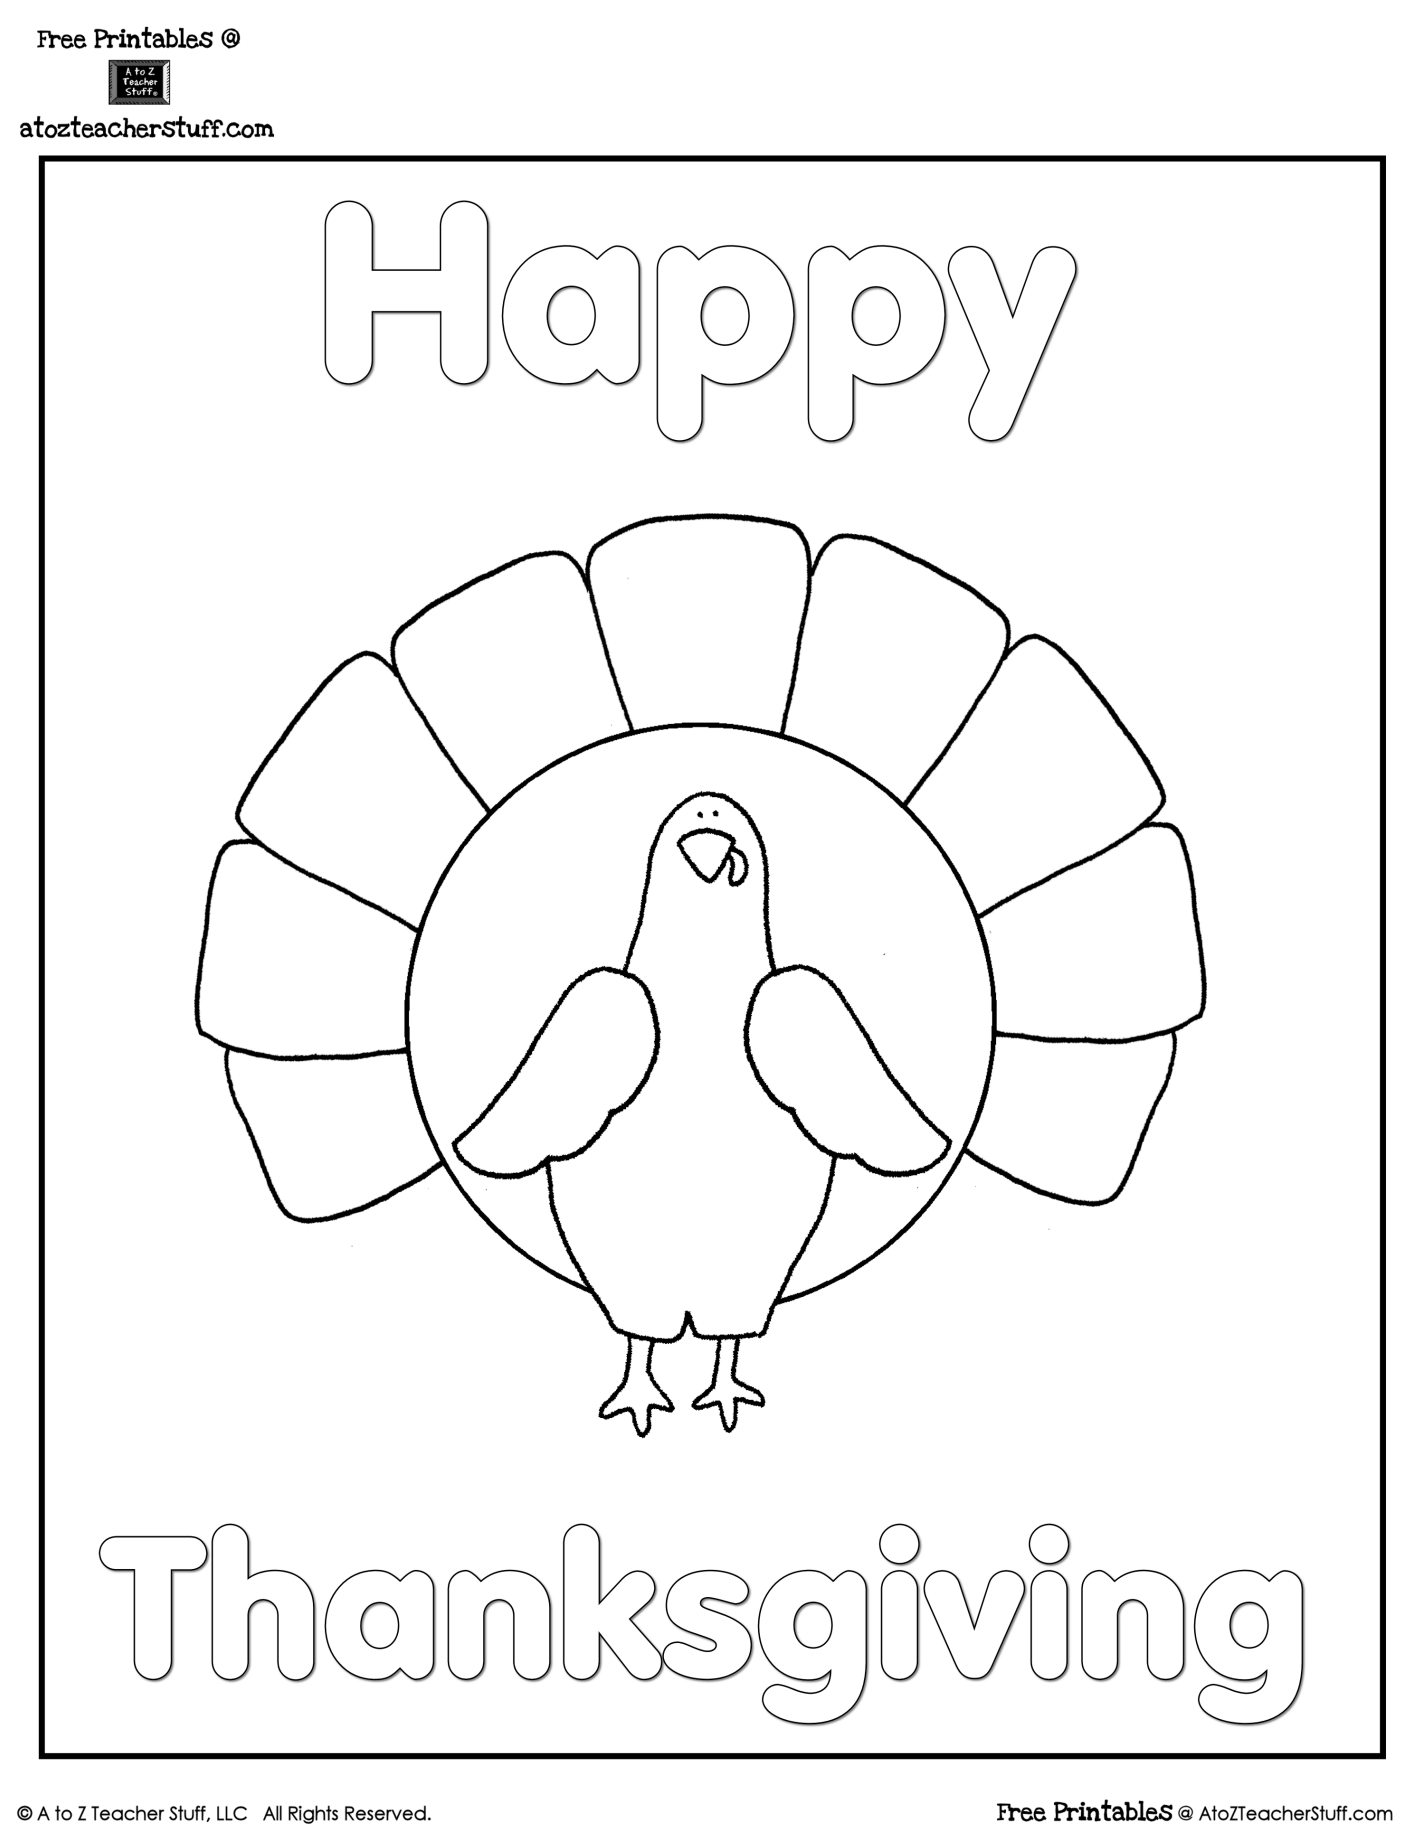 Turkey Coloring Sheet | A to Z Teacher Stuff Printable Pages and ...